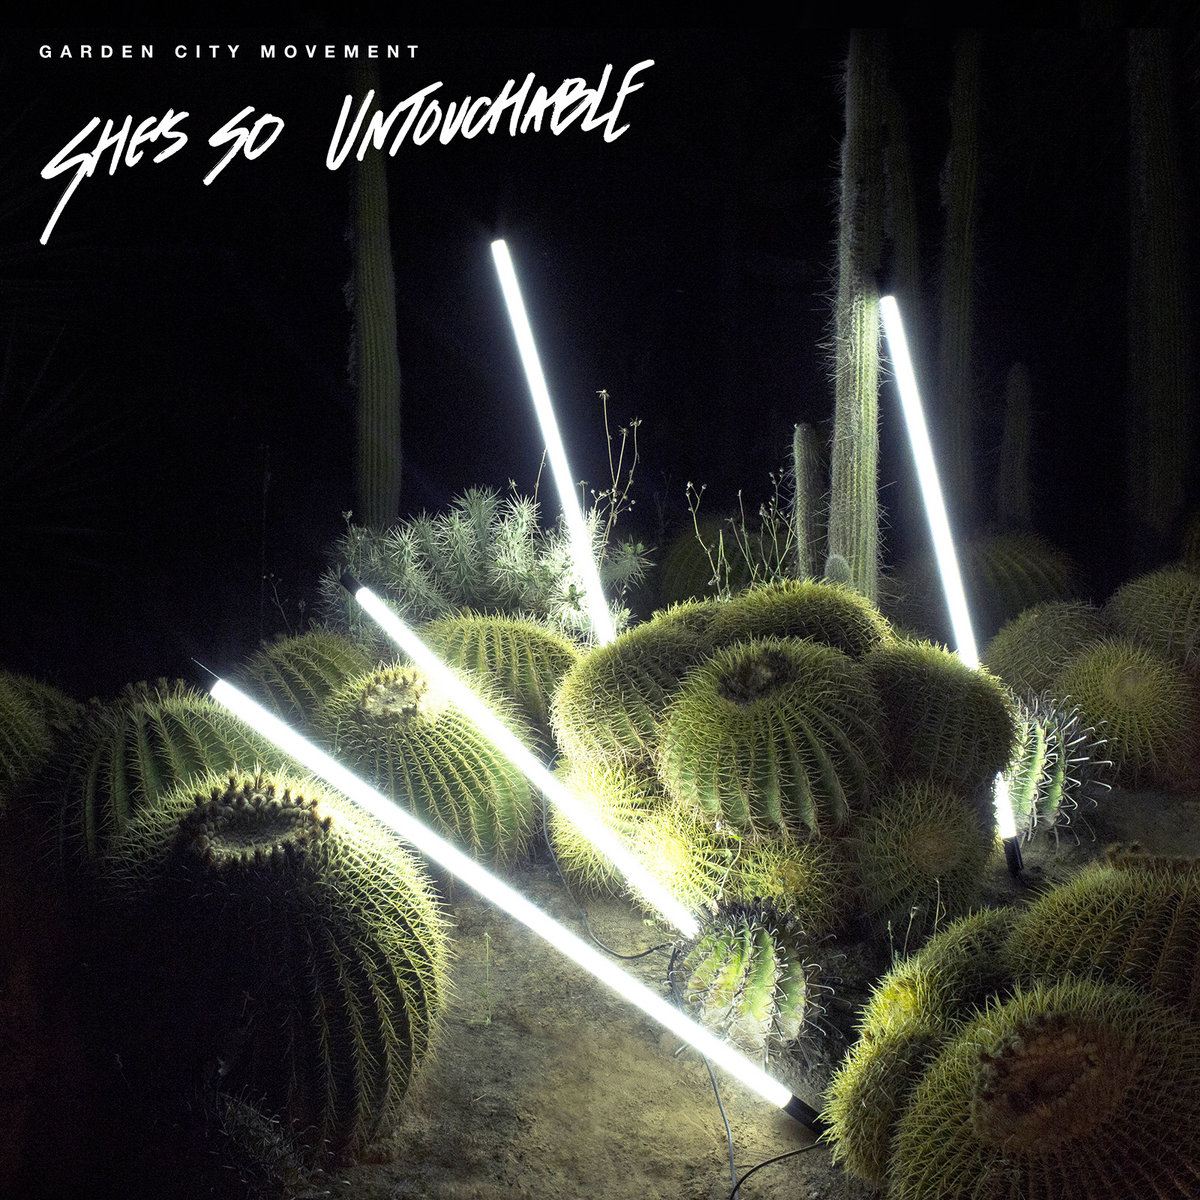 Download garden city movement move on